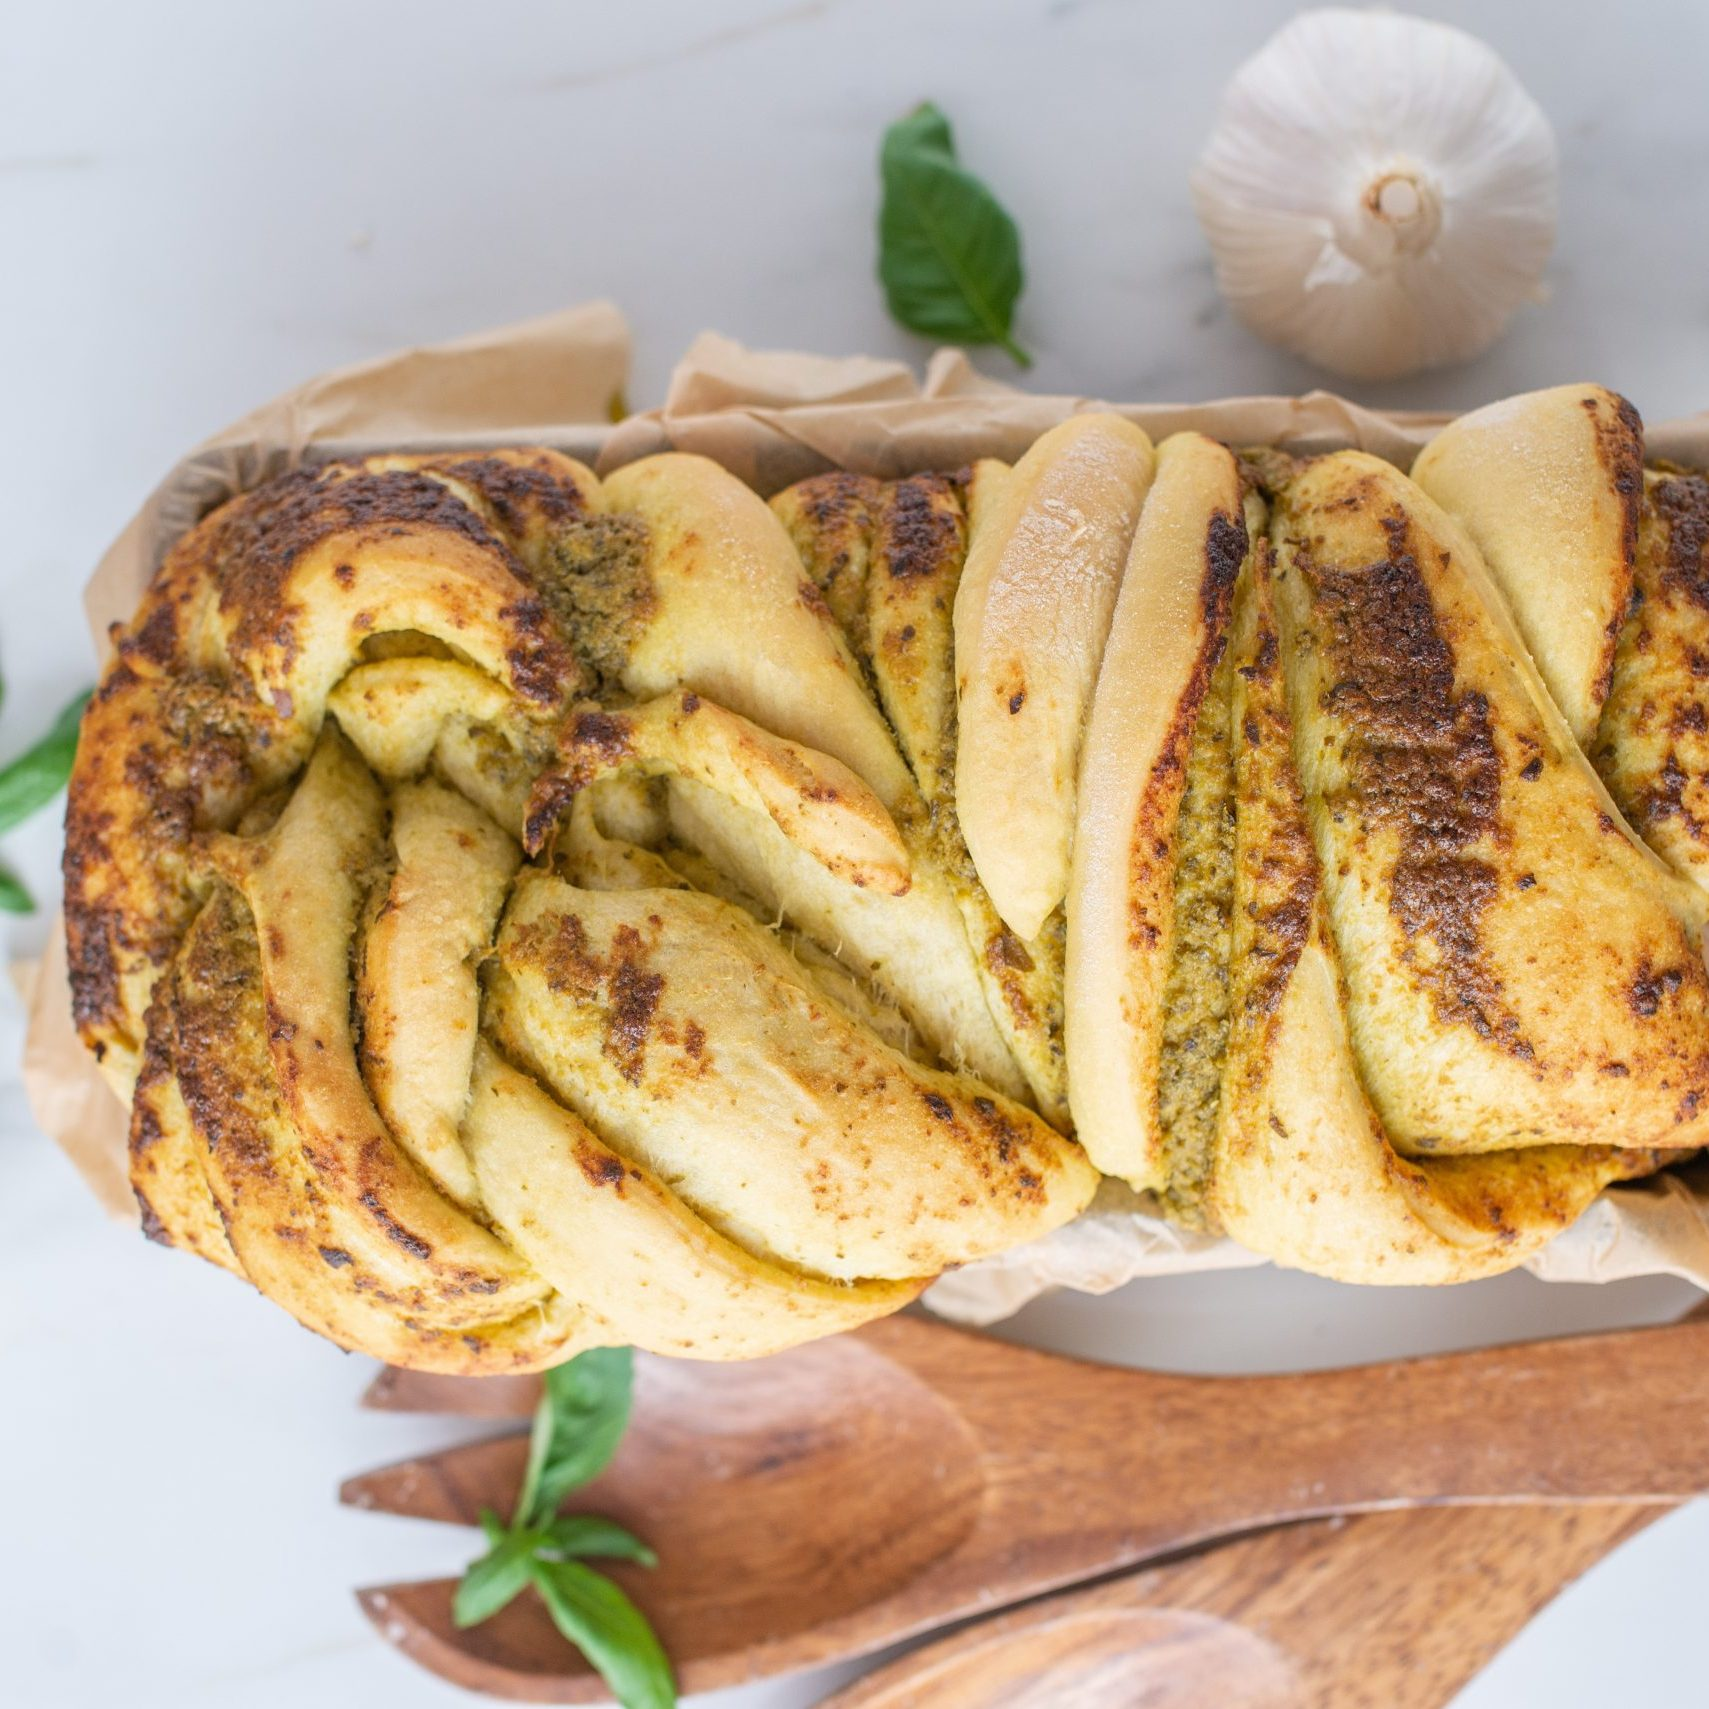 home made braided basil pesto bread on a table